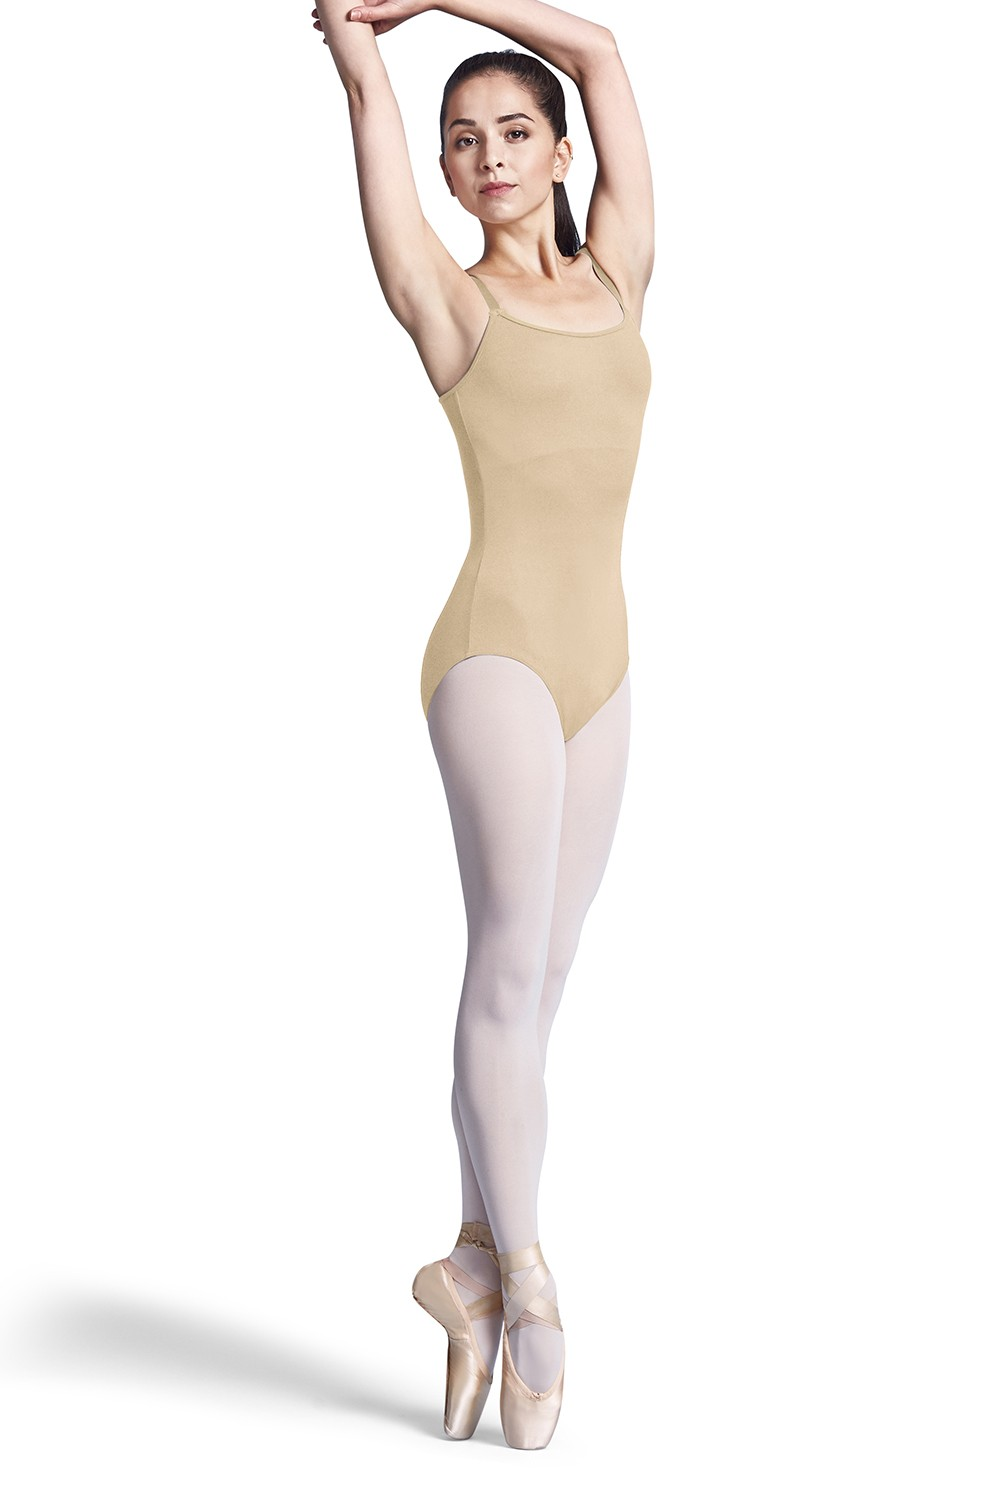 Zena Support Bra Women's Dance Leotards